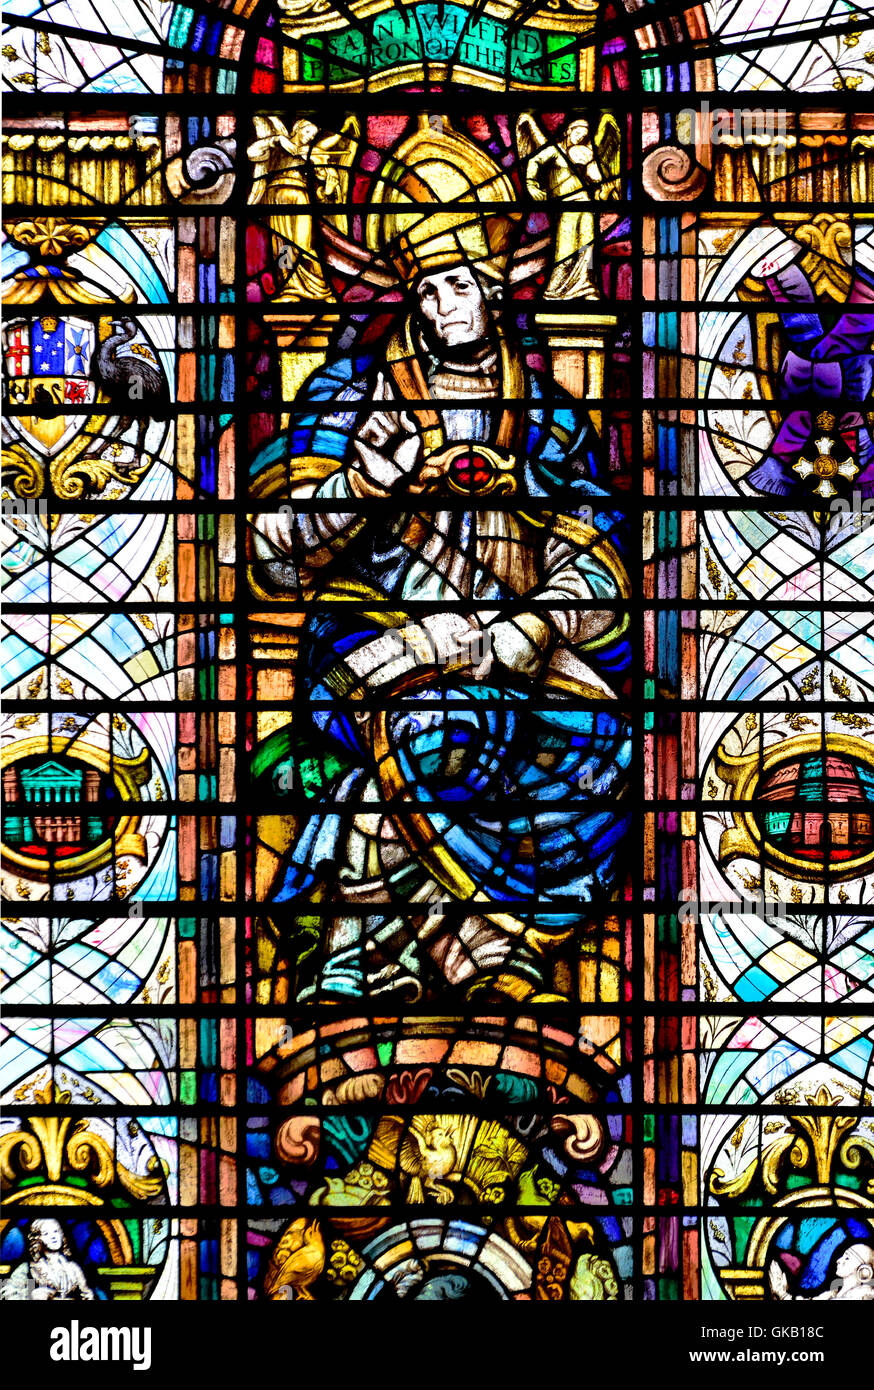 London England, UK. Church of the Holy Sepulchre / St Sepulchre Without Newgate. Stained Glass Window - St Wilfrid... - Stock Image